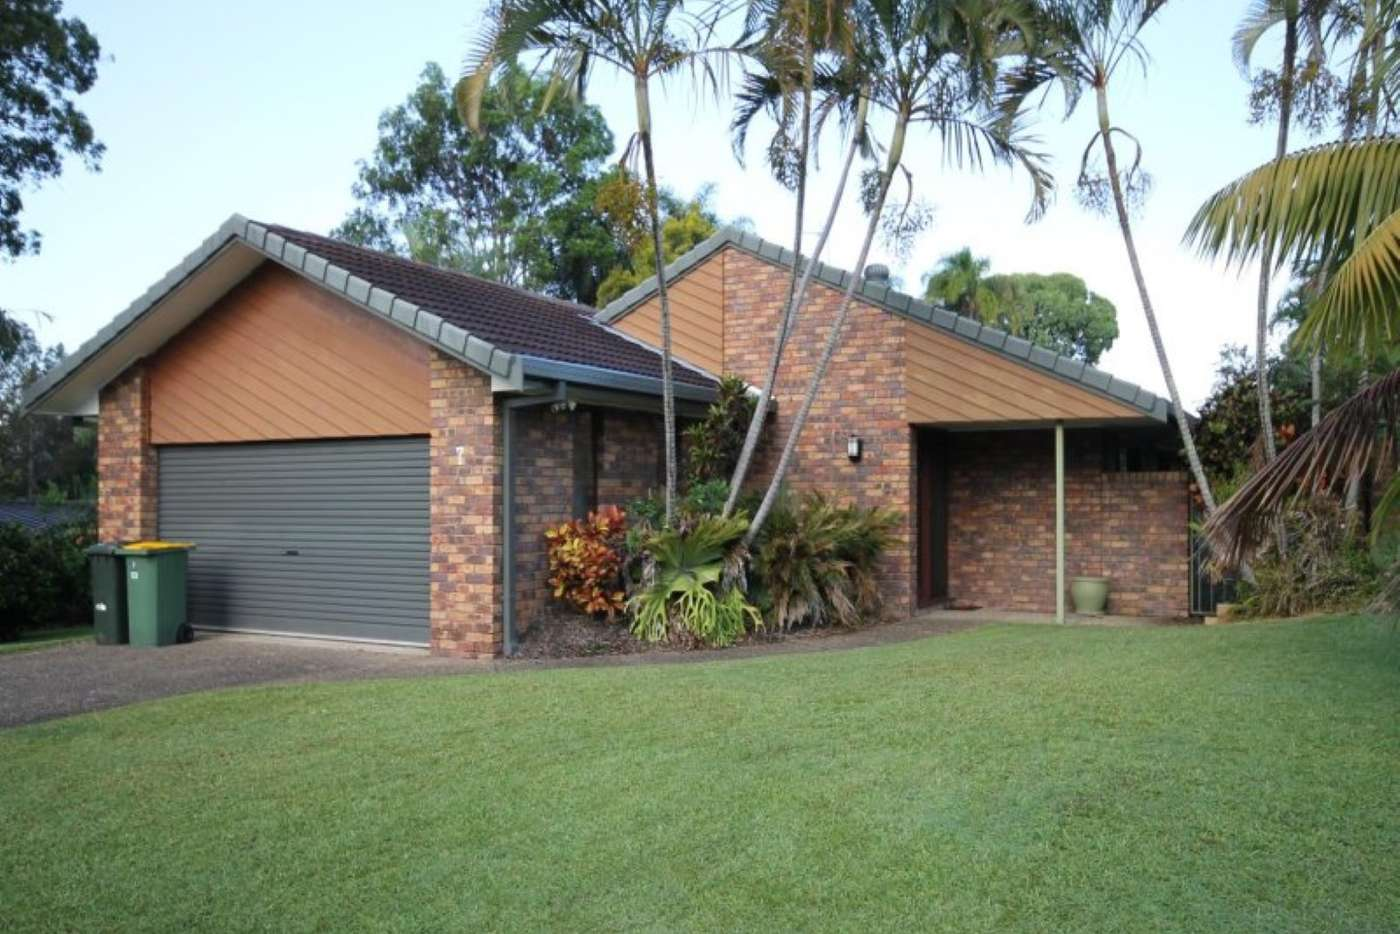 Main view of Homely house listing, 7 Kirribilli Court, Robina QLD 4226